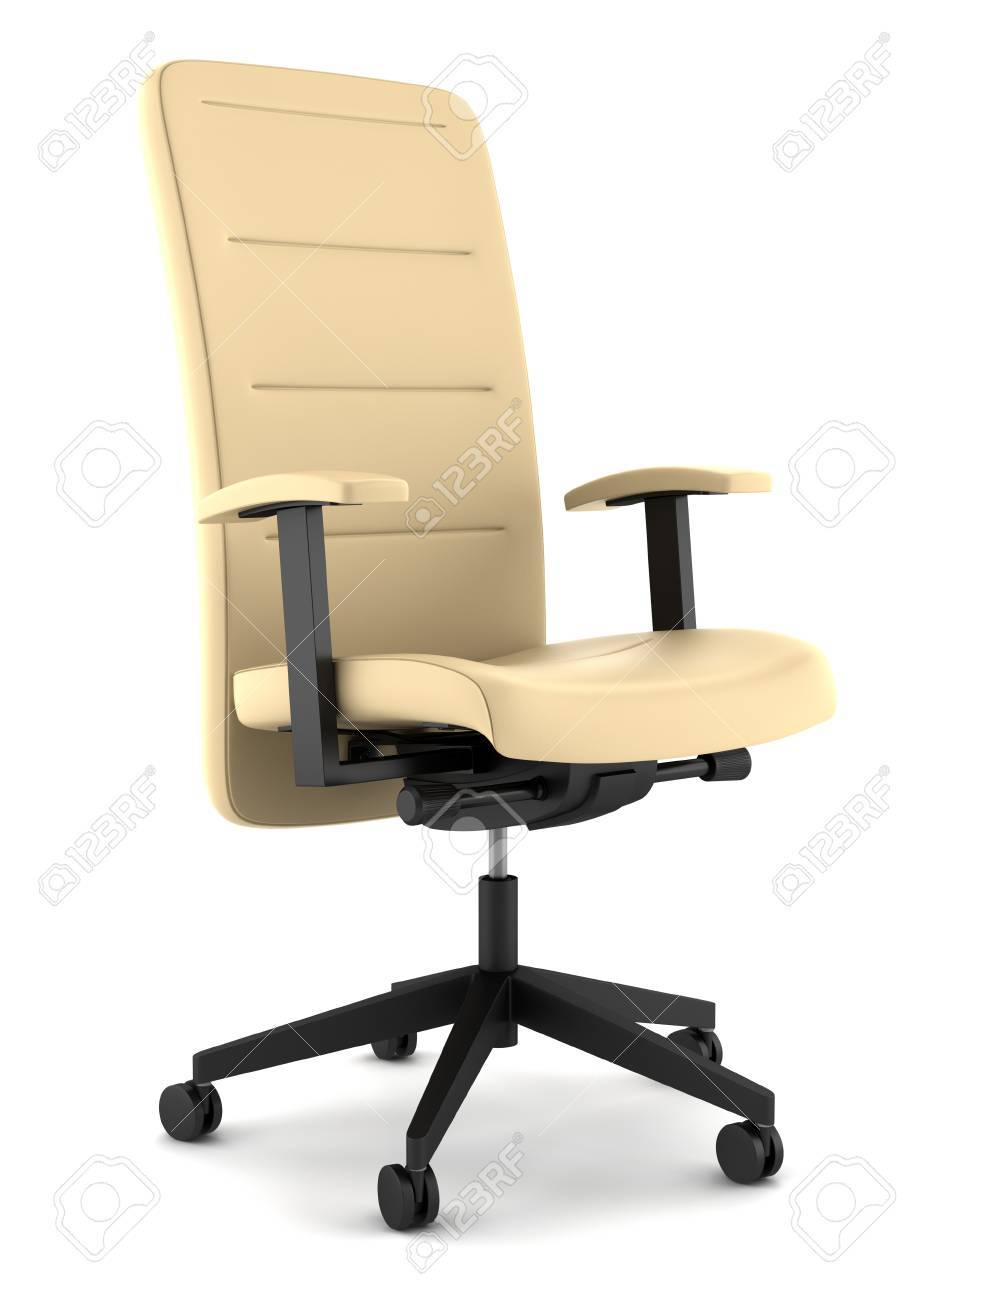 Modern Beige Leather Office Chair Isolated On White Background Stock Photo Picture And Royalty Free Image Image 10319443